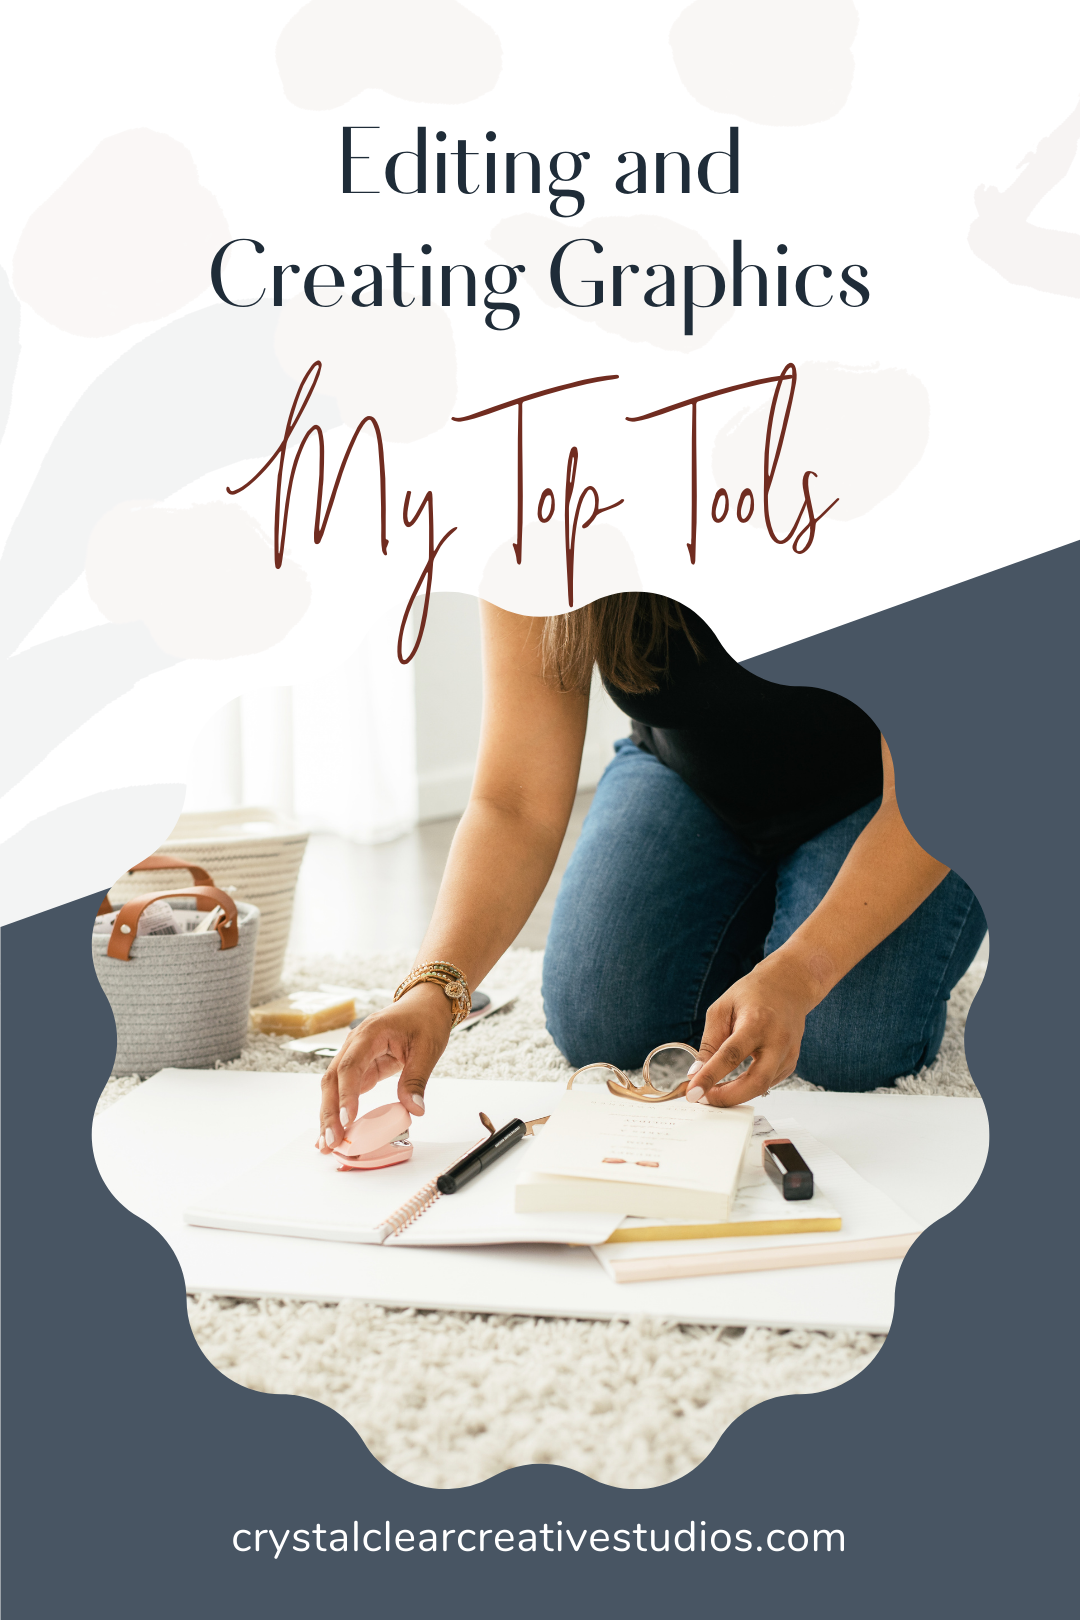 top tips for creating graphics and editing photos